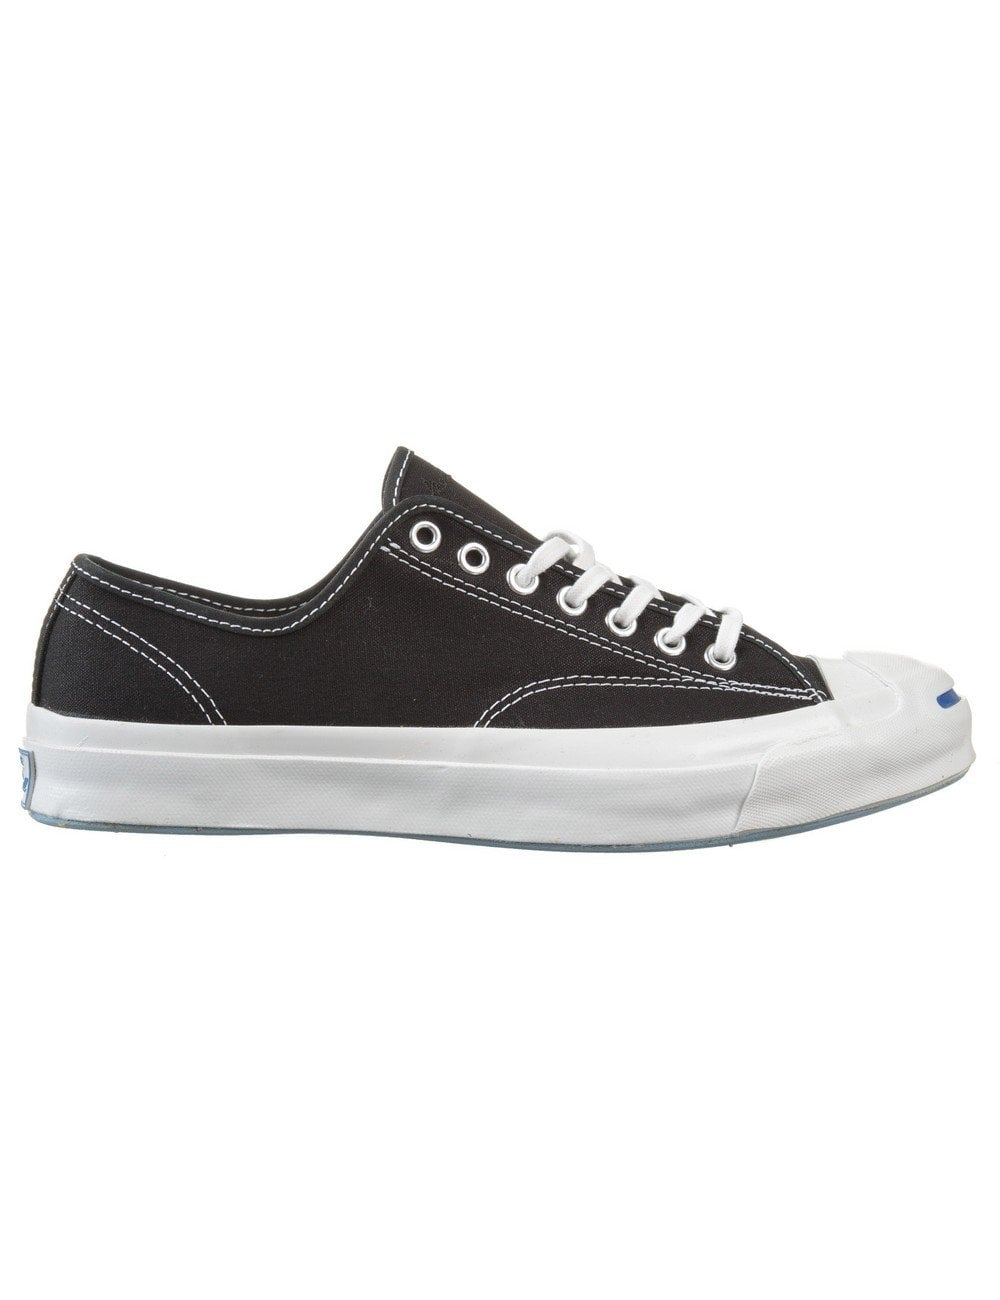 88035bcbd45f Converse Jack Purcell Signature Shoes OX - Black - Trainers from Fat ...